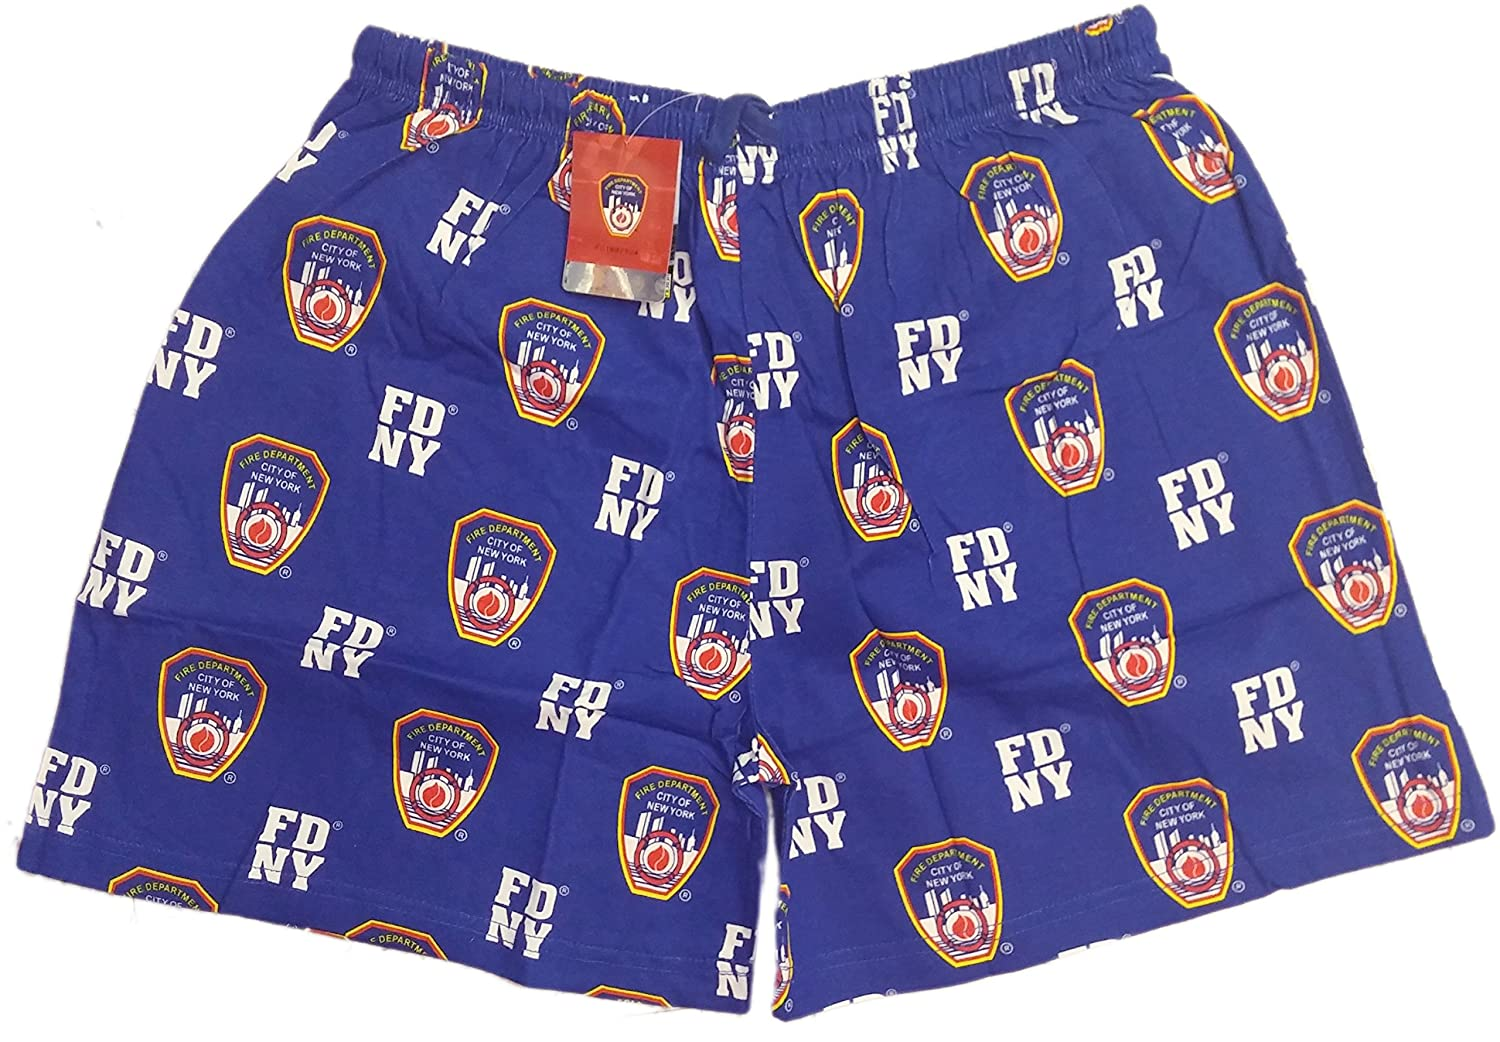 FDNY Boxer Shorts Blue Mens Sleepwear NYC Fire Dept Gift